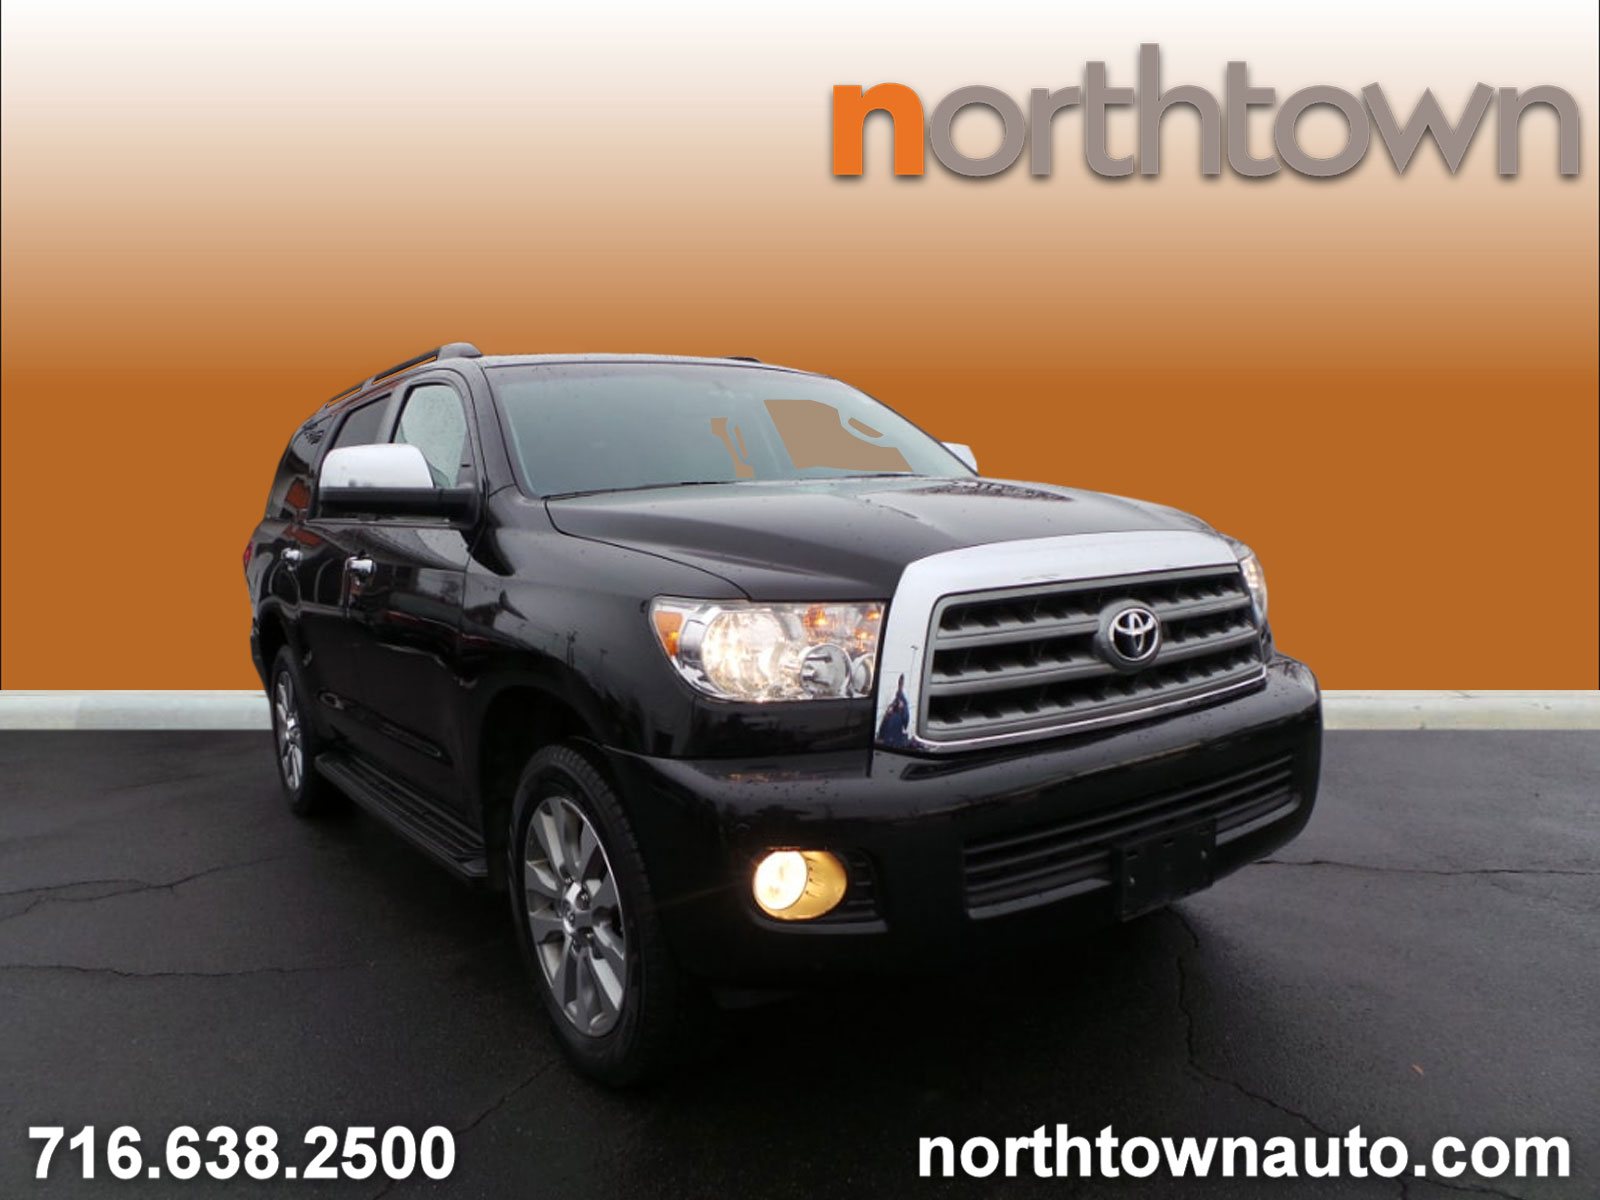 2015 Toyota Sequoia Limited V8 4WD SUV